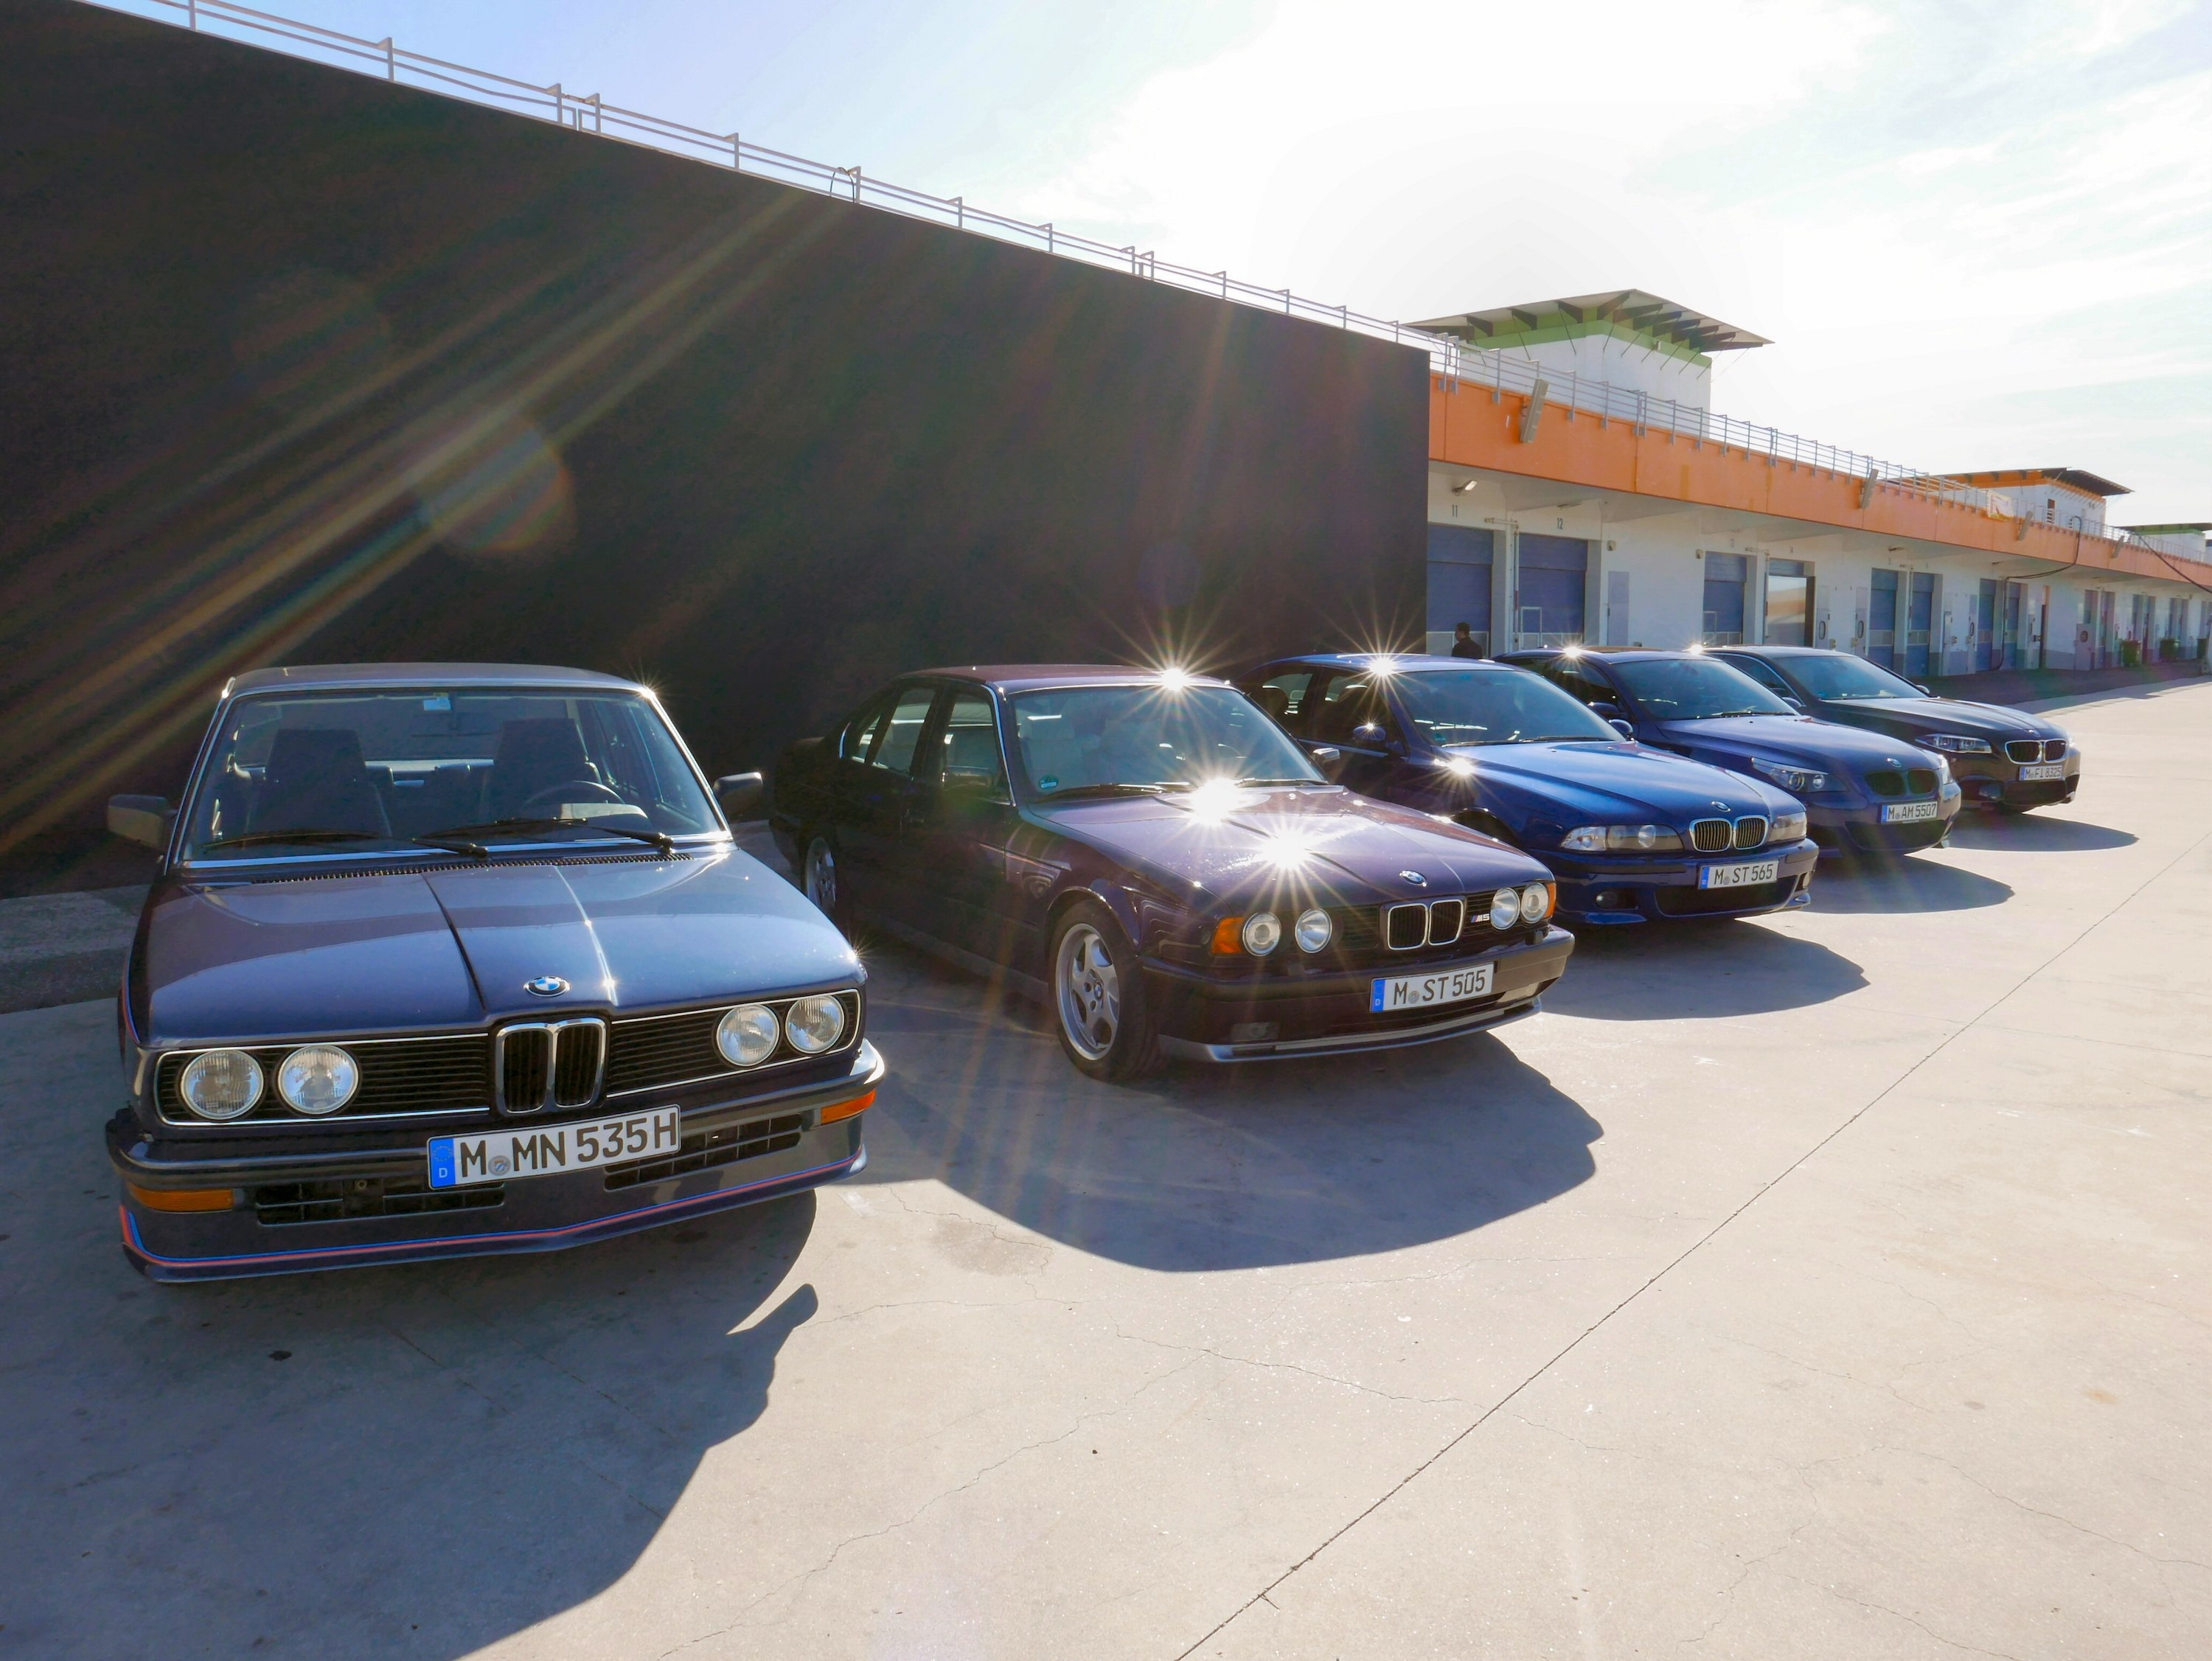 bmw new cars me and pre owned tampa dealer dealership robert bay chodorowski near